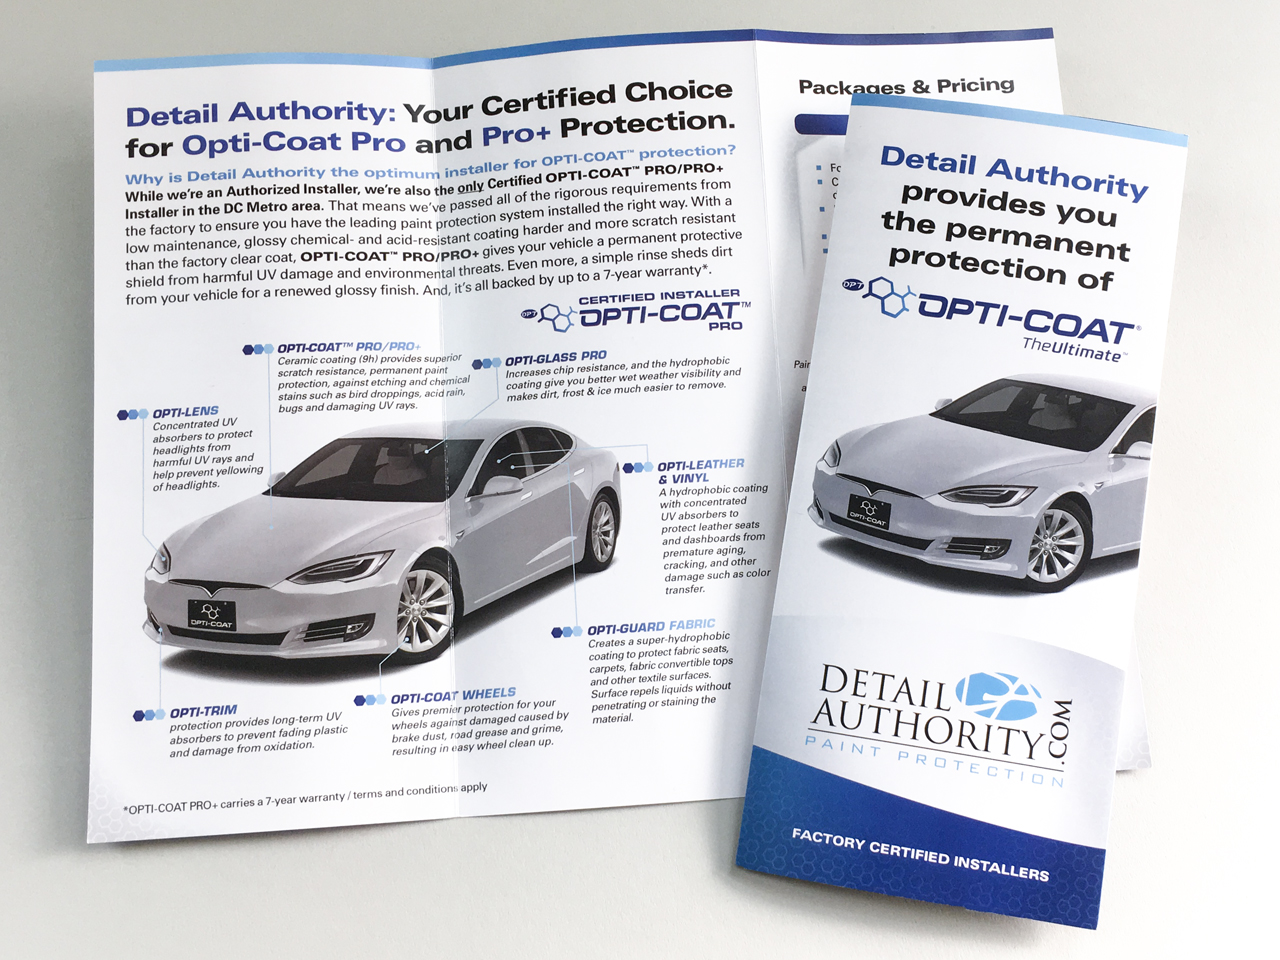 Detail Authority Opti-Coat Brochure